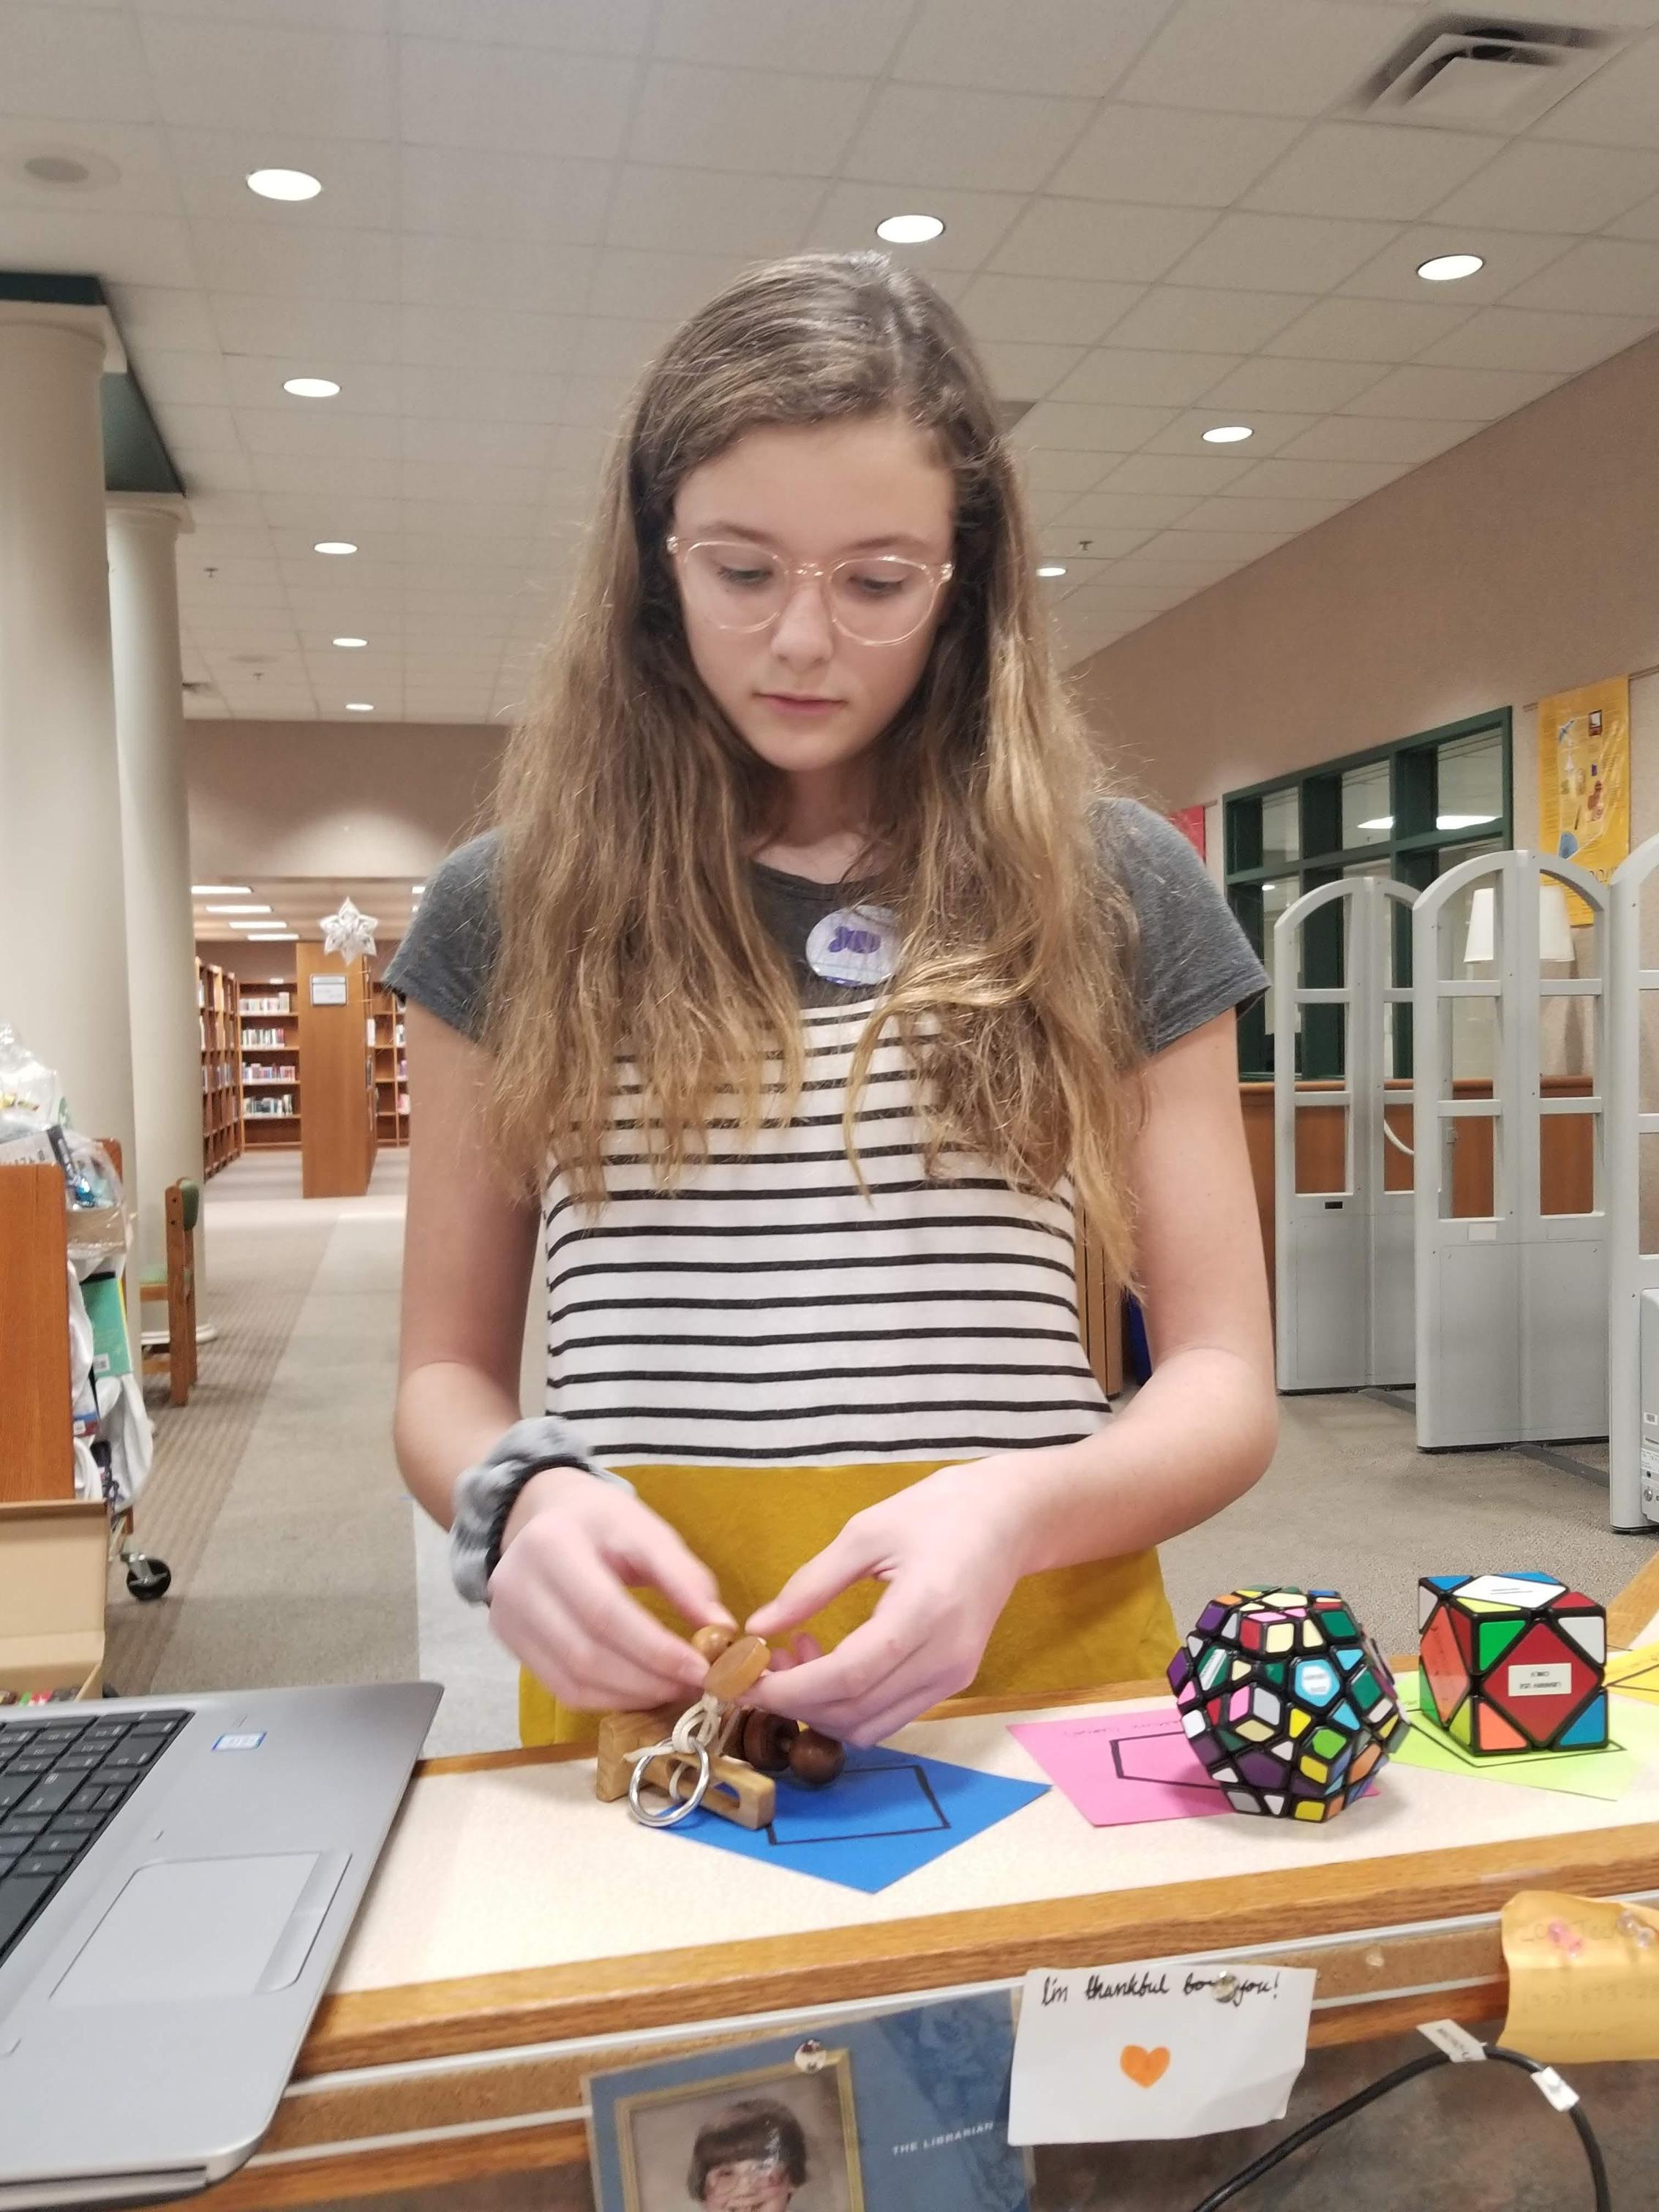 A girl looks at a 3D puzzle in her hands